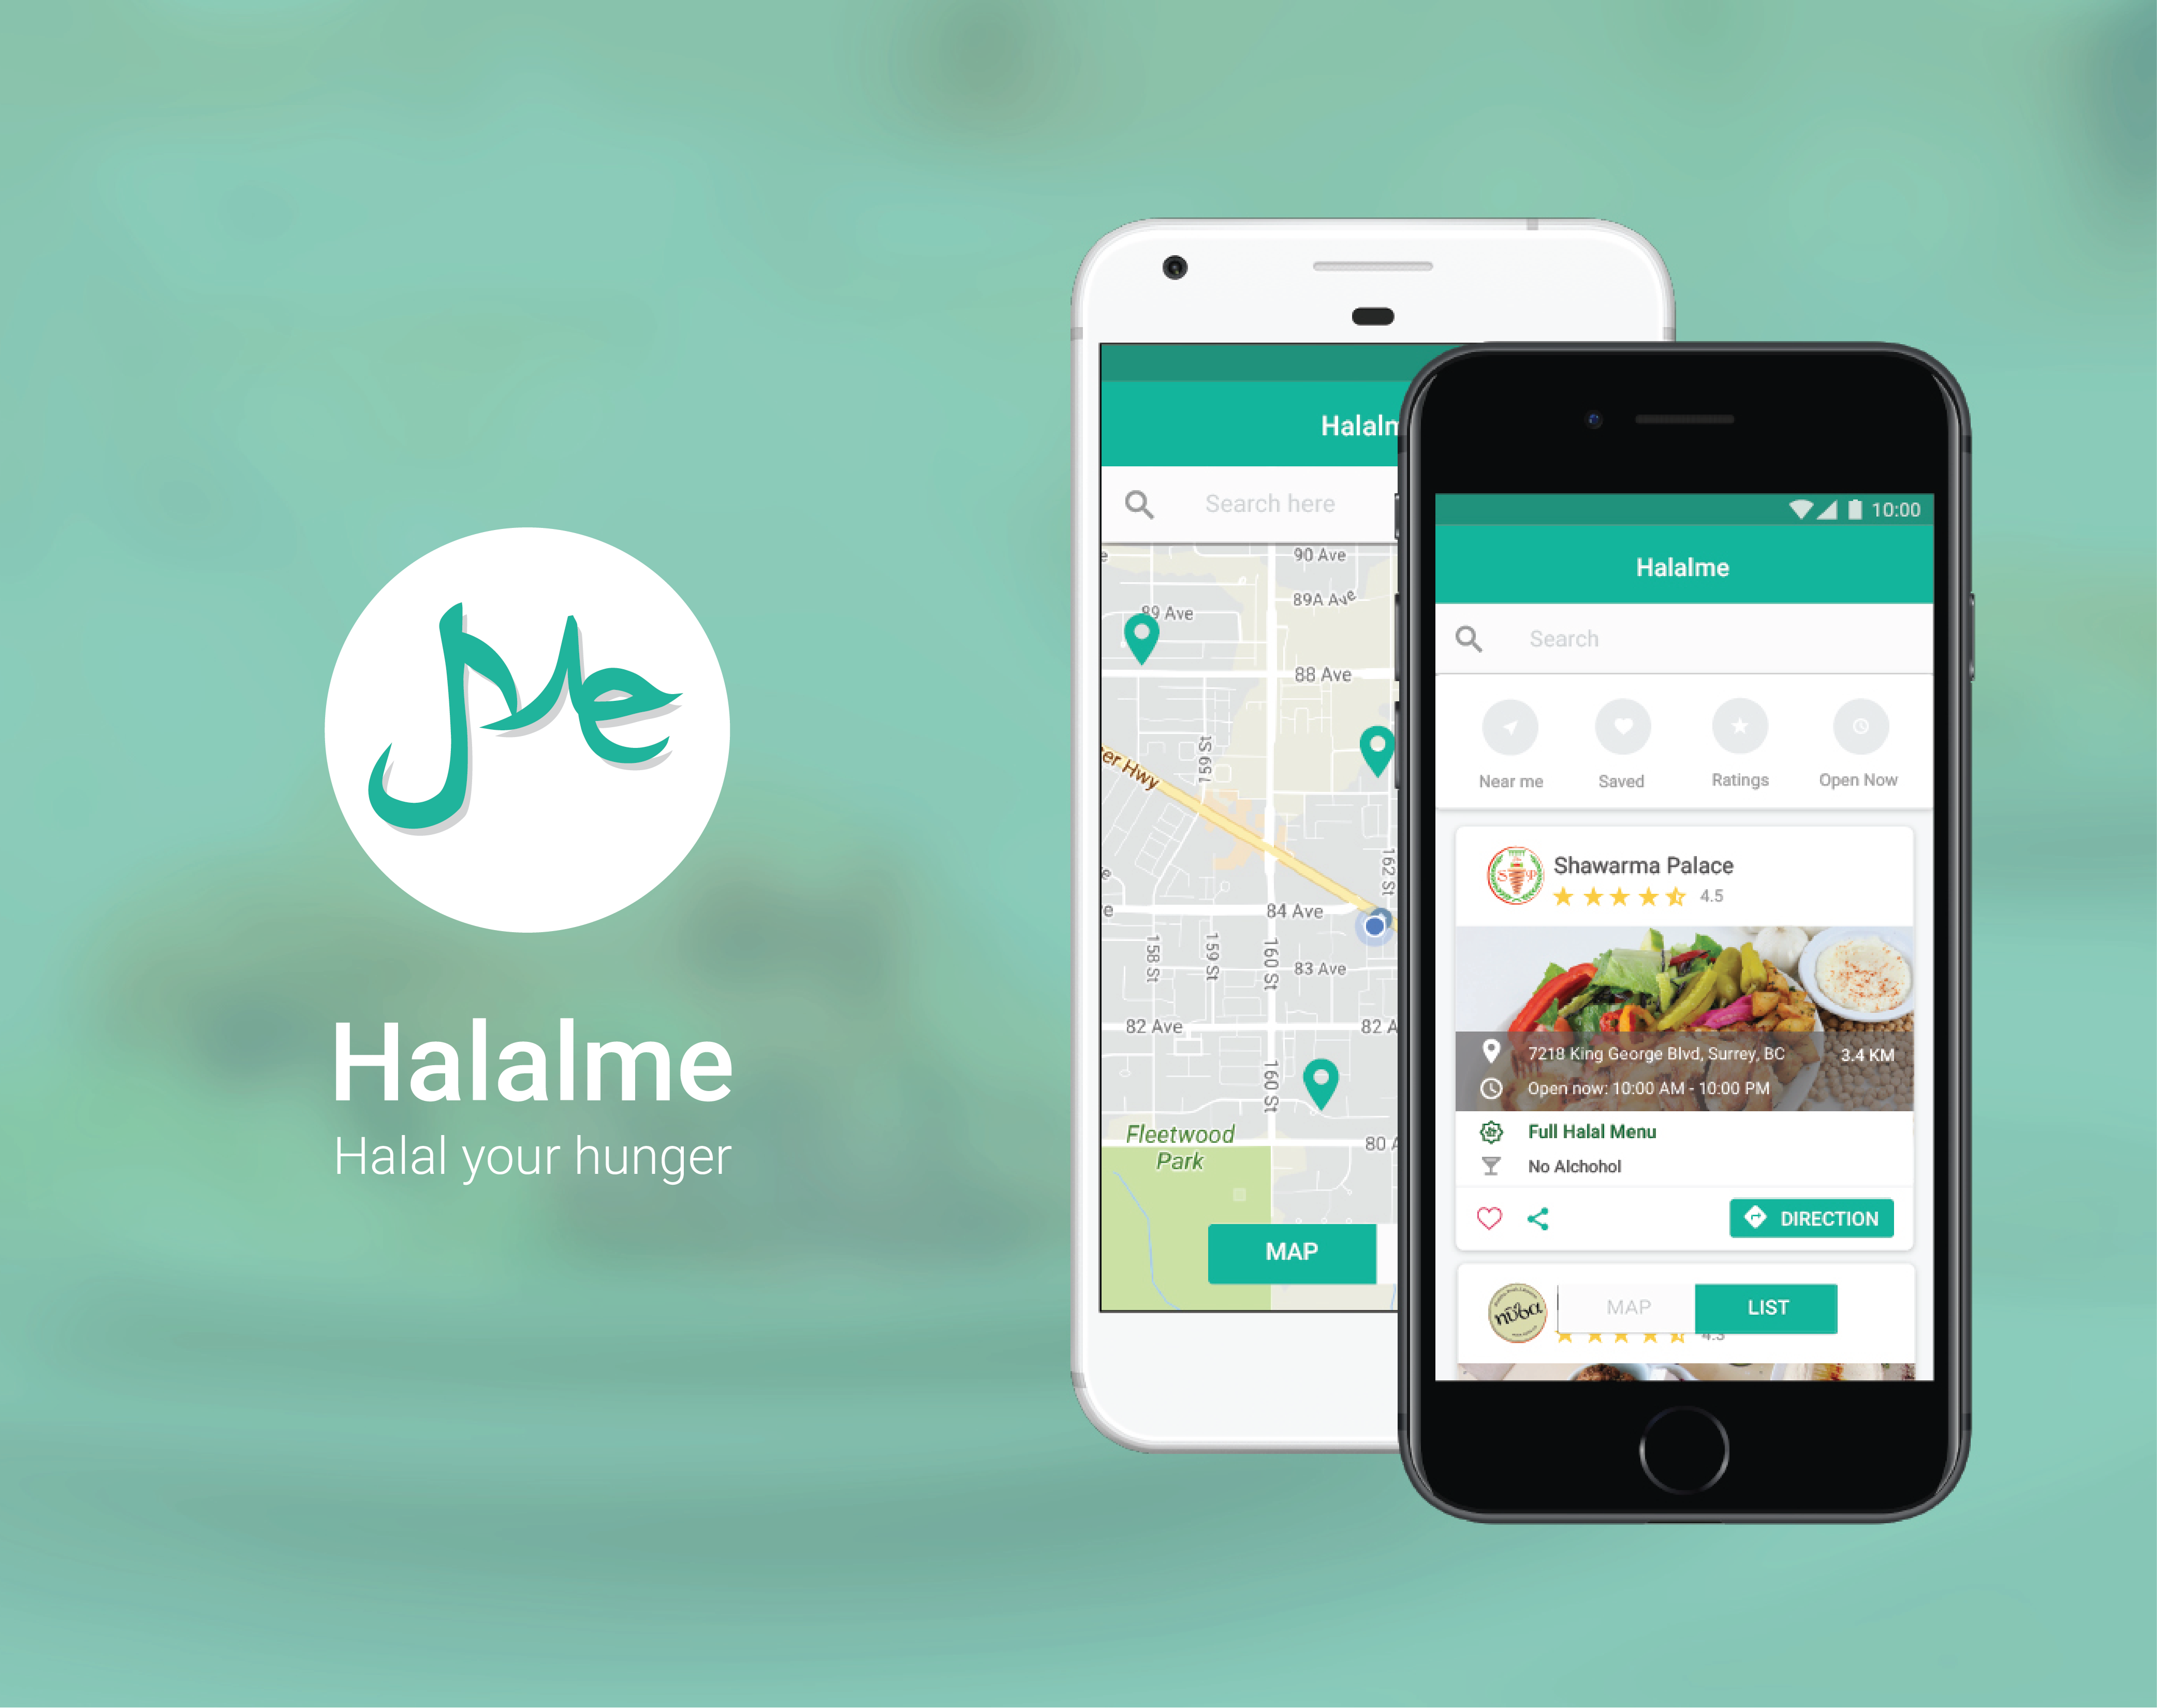 SFU students and alumnus create app for locating halal eateries